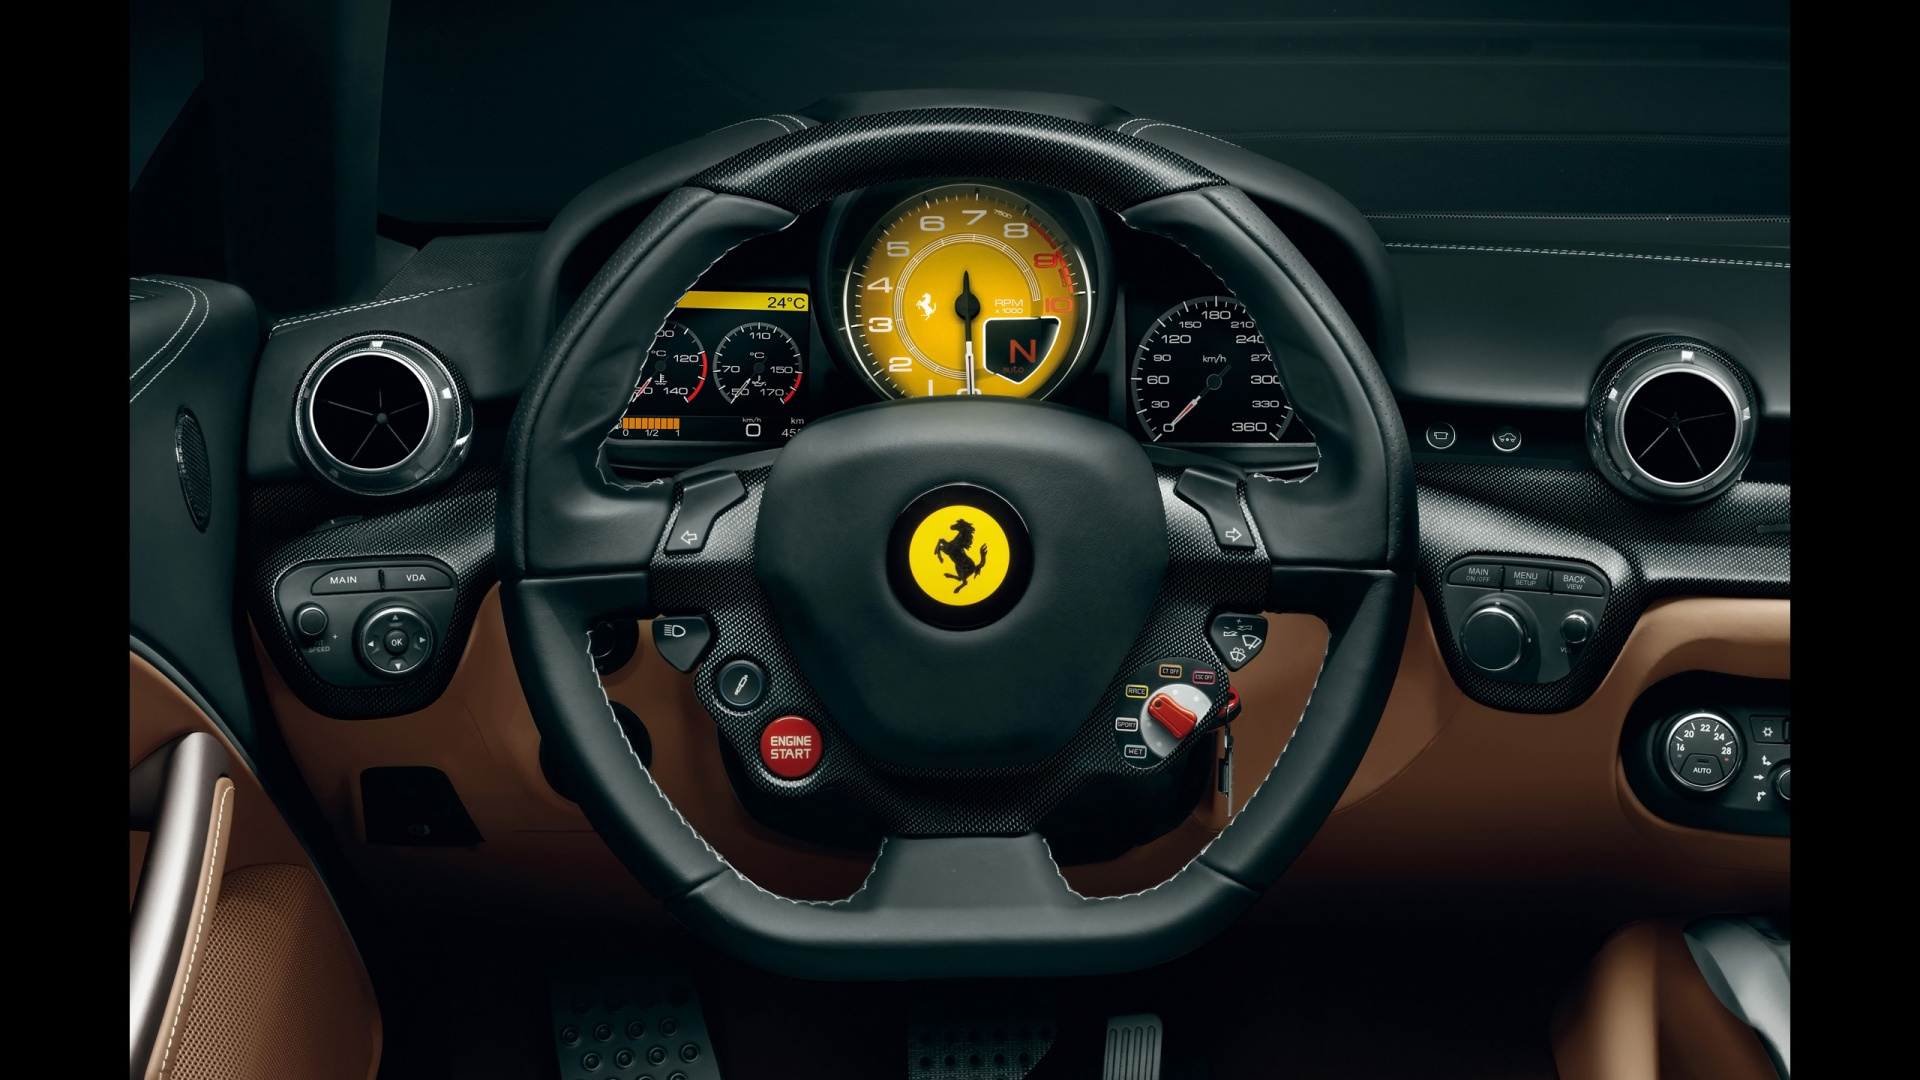 Image Result For Mac Wallpaper Ferrari Interior Pics